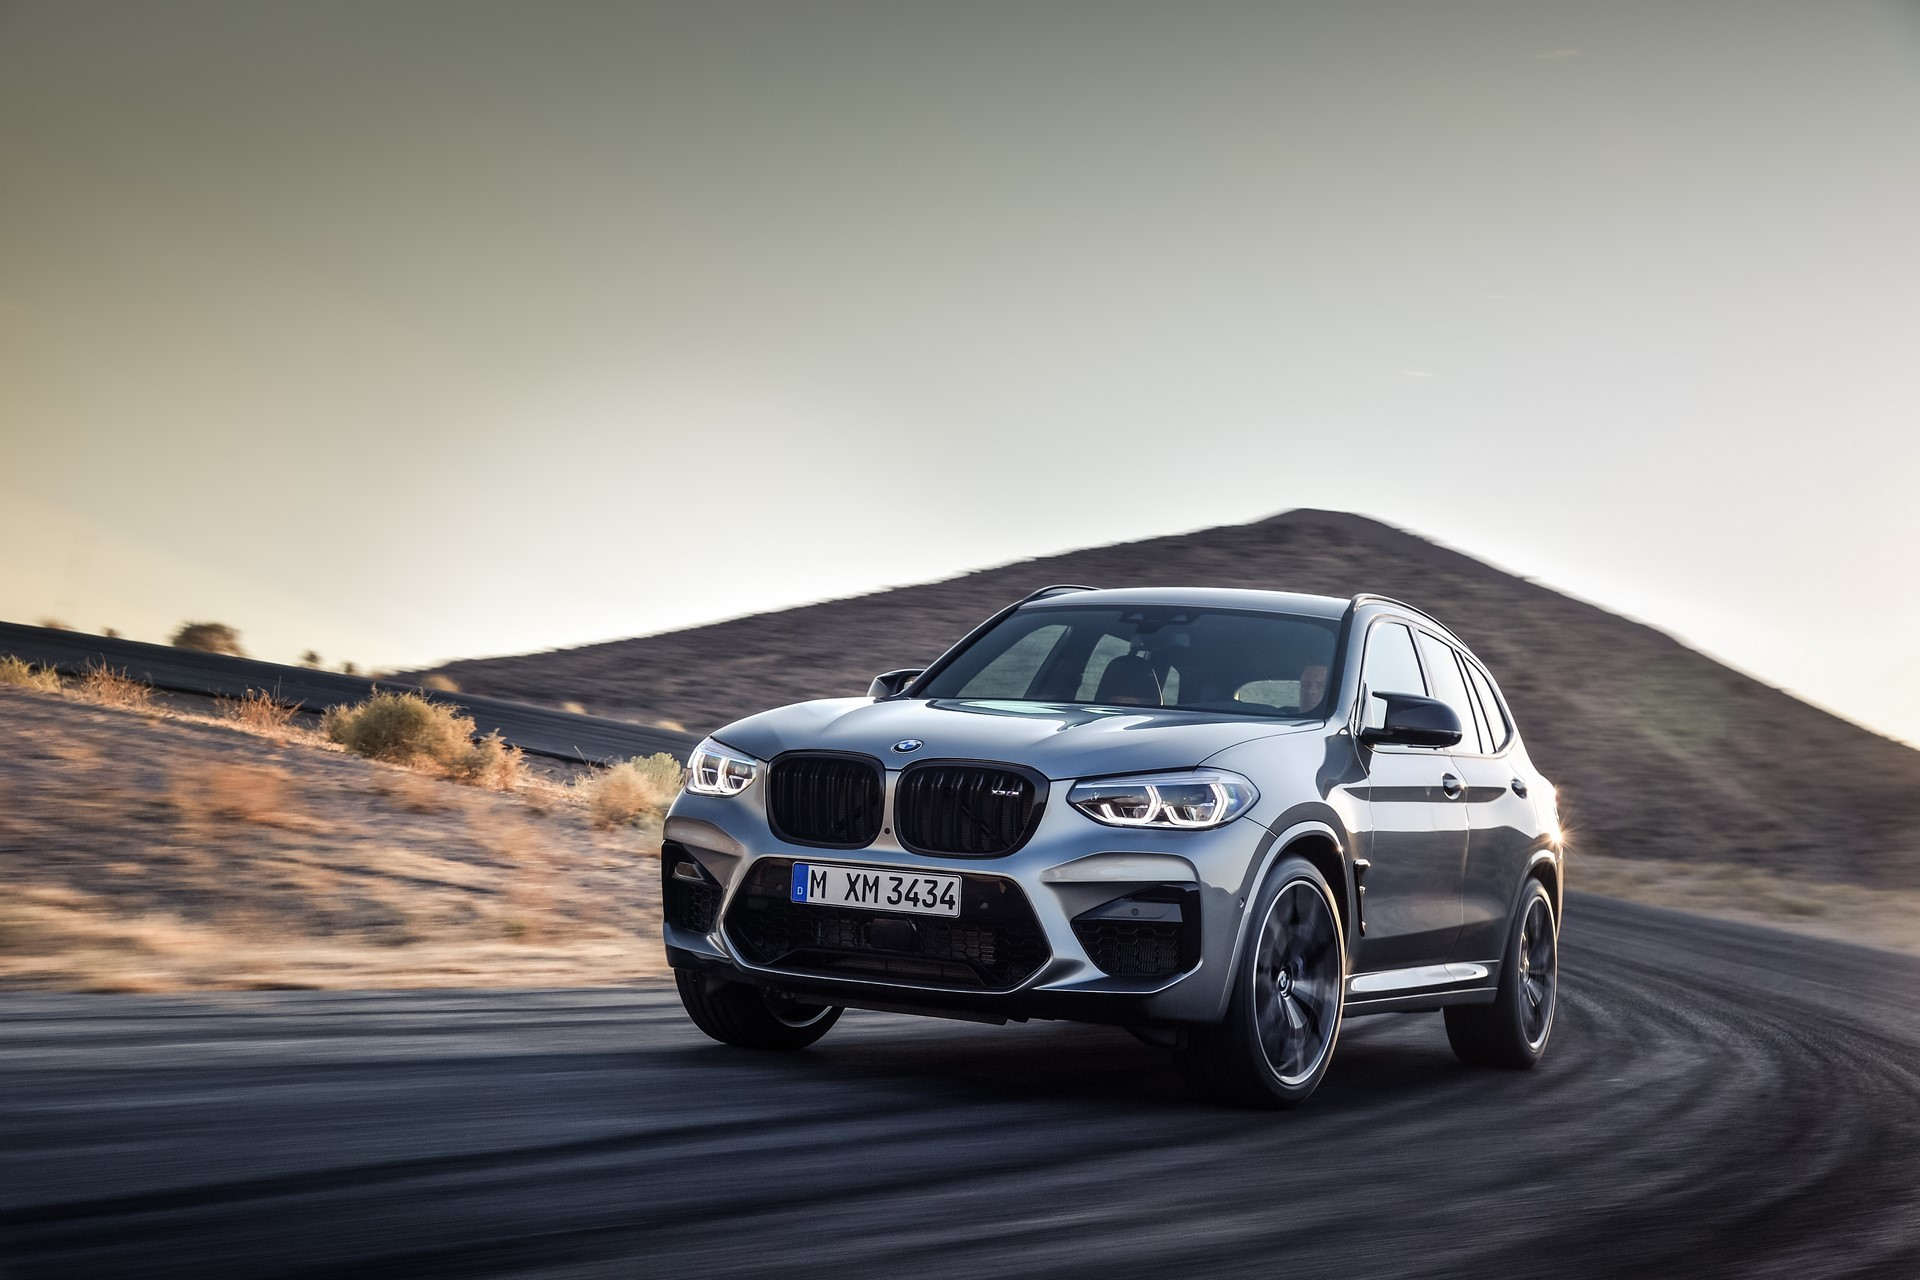 BMW X3 M and X4 M 2019 (34)